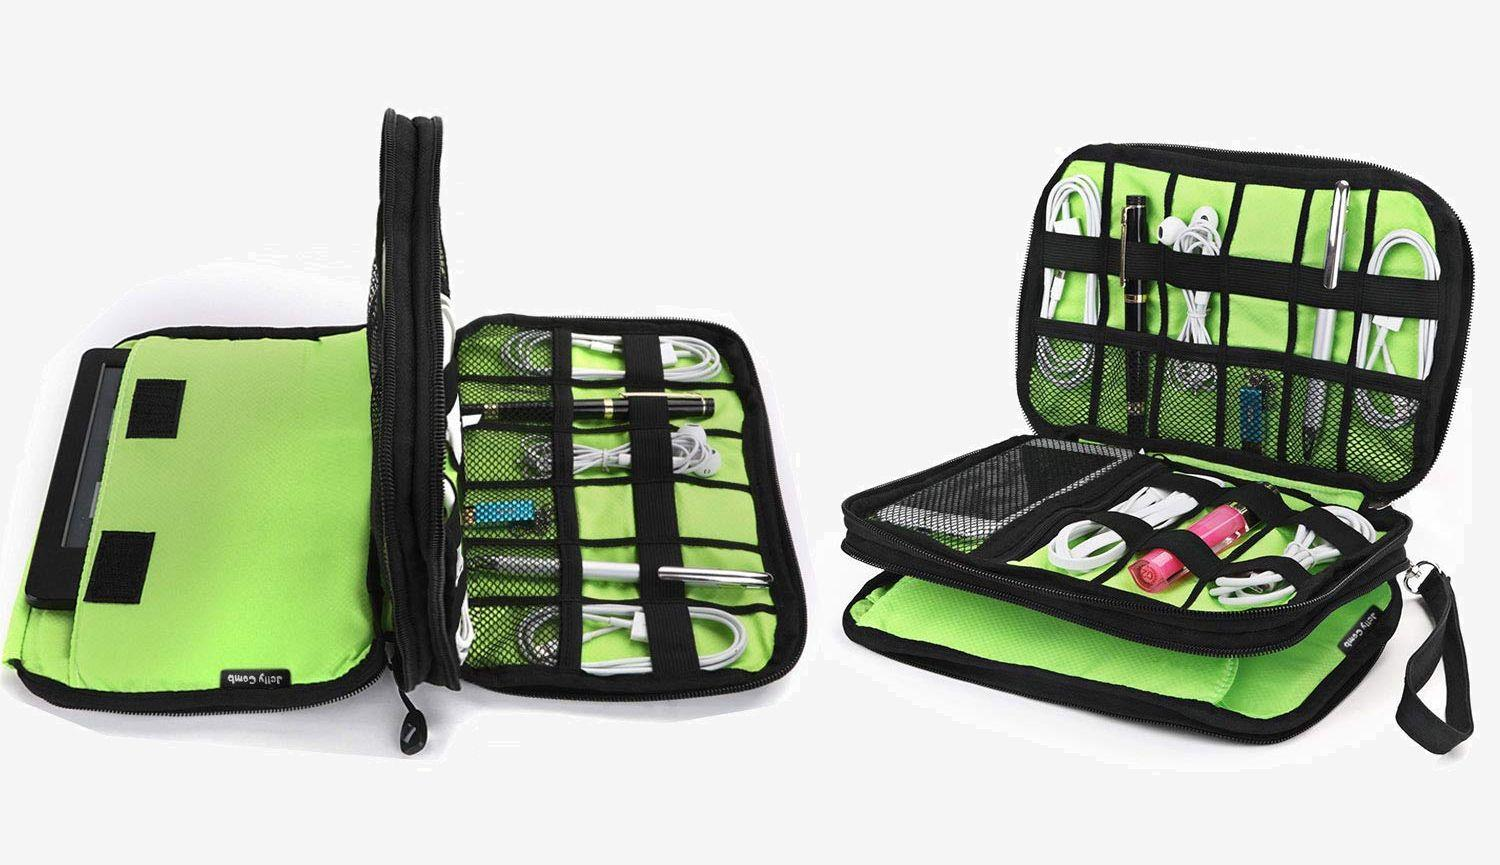 jelly-comb-electronics-organizer-bag-green-and-black